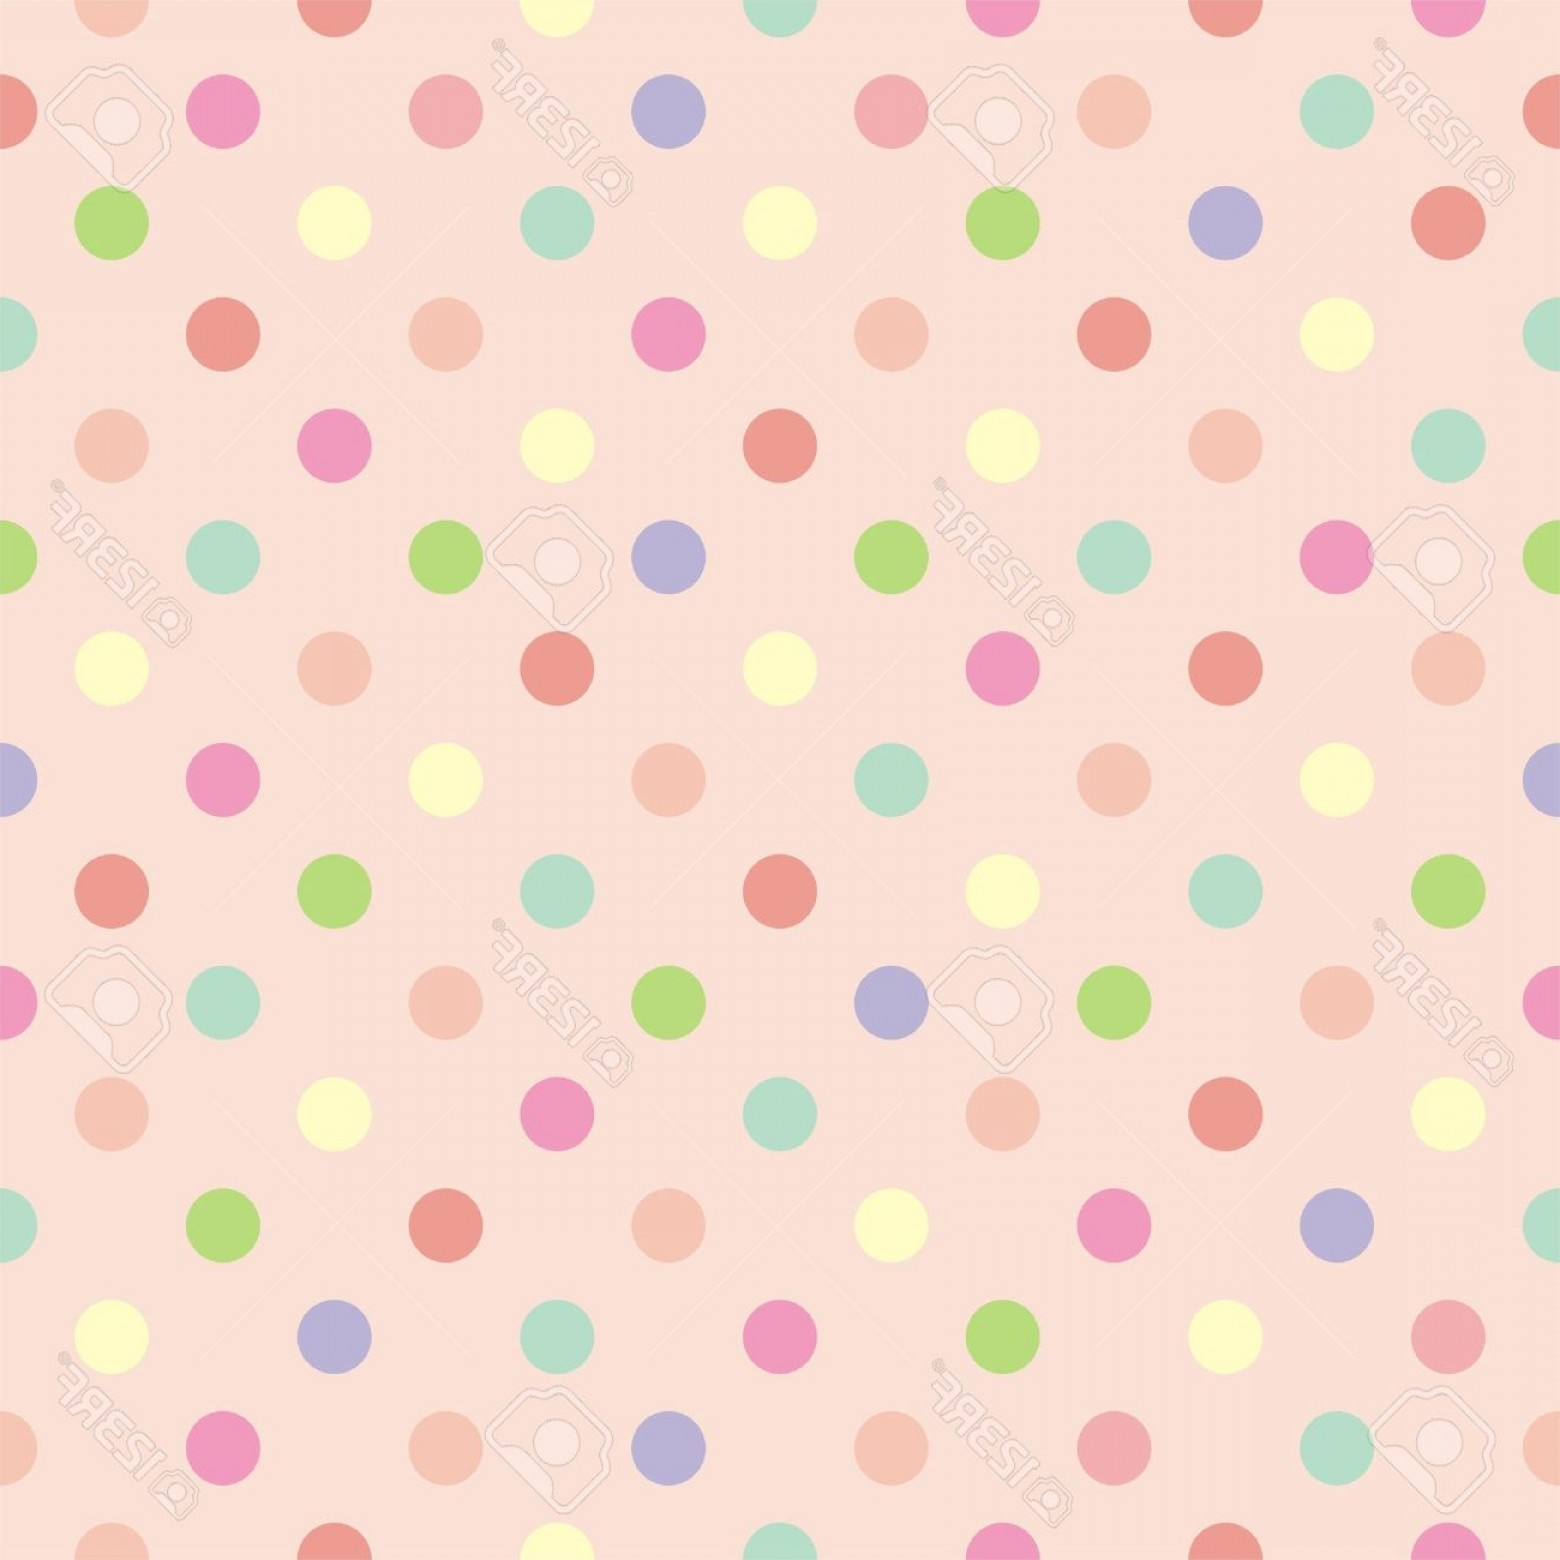 polka dot background vector y photocolorful vector background with red pink green blue and yellow